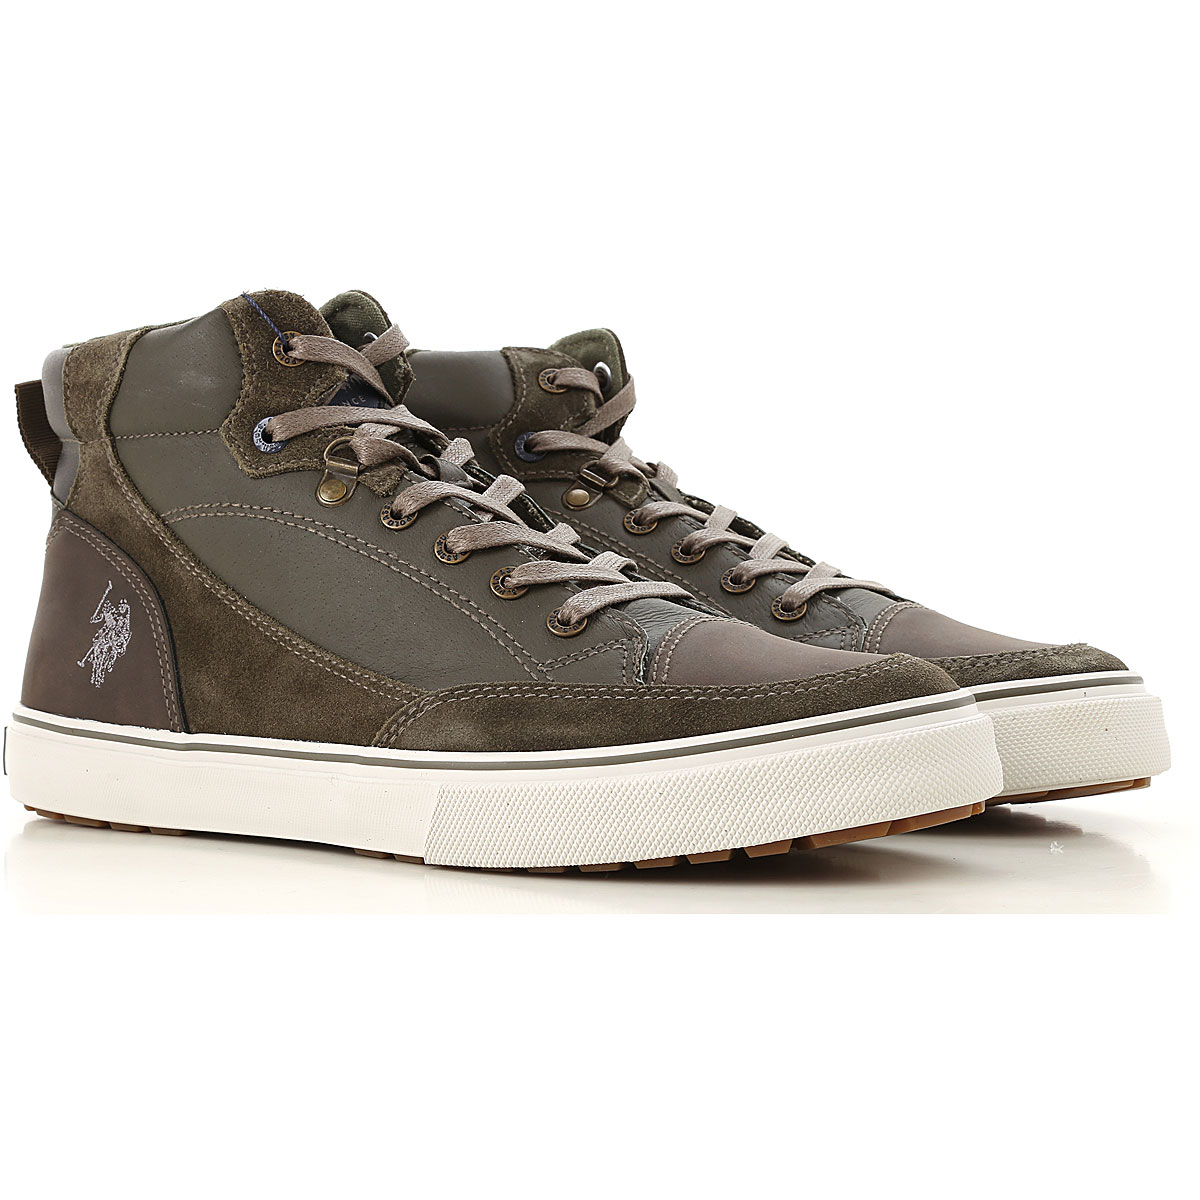 Image of U.S. Polo Sneakers for Men, Military Green, Leather, 2017, UK 6 - EUR 40 - US 7 UK 7 - EUR 41 - US 8 UK 8 - EUR 42 - US 9 UK 9 - EUR 43 - US 10 UK 10 - EUR 44 - US 11